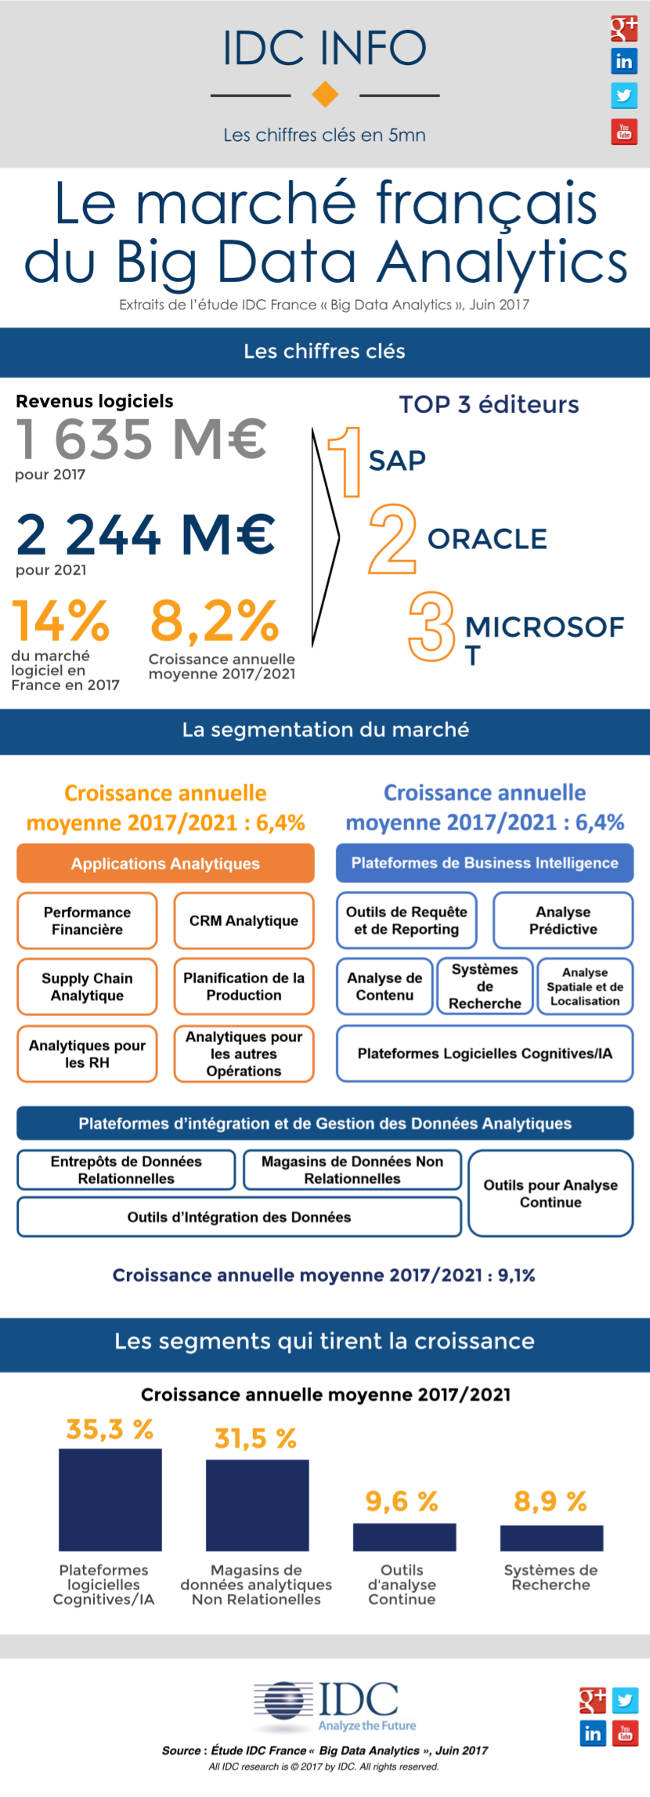 Le marché français du Big Data Analytics